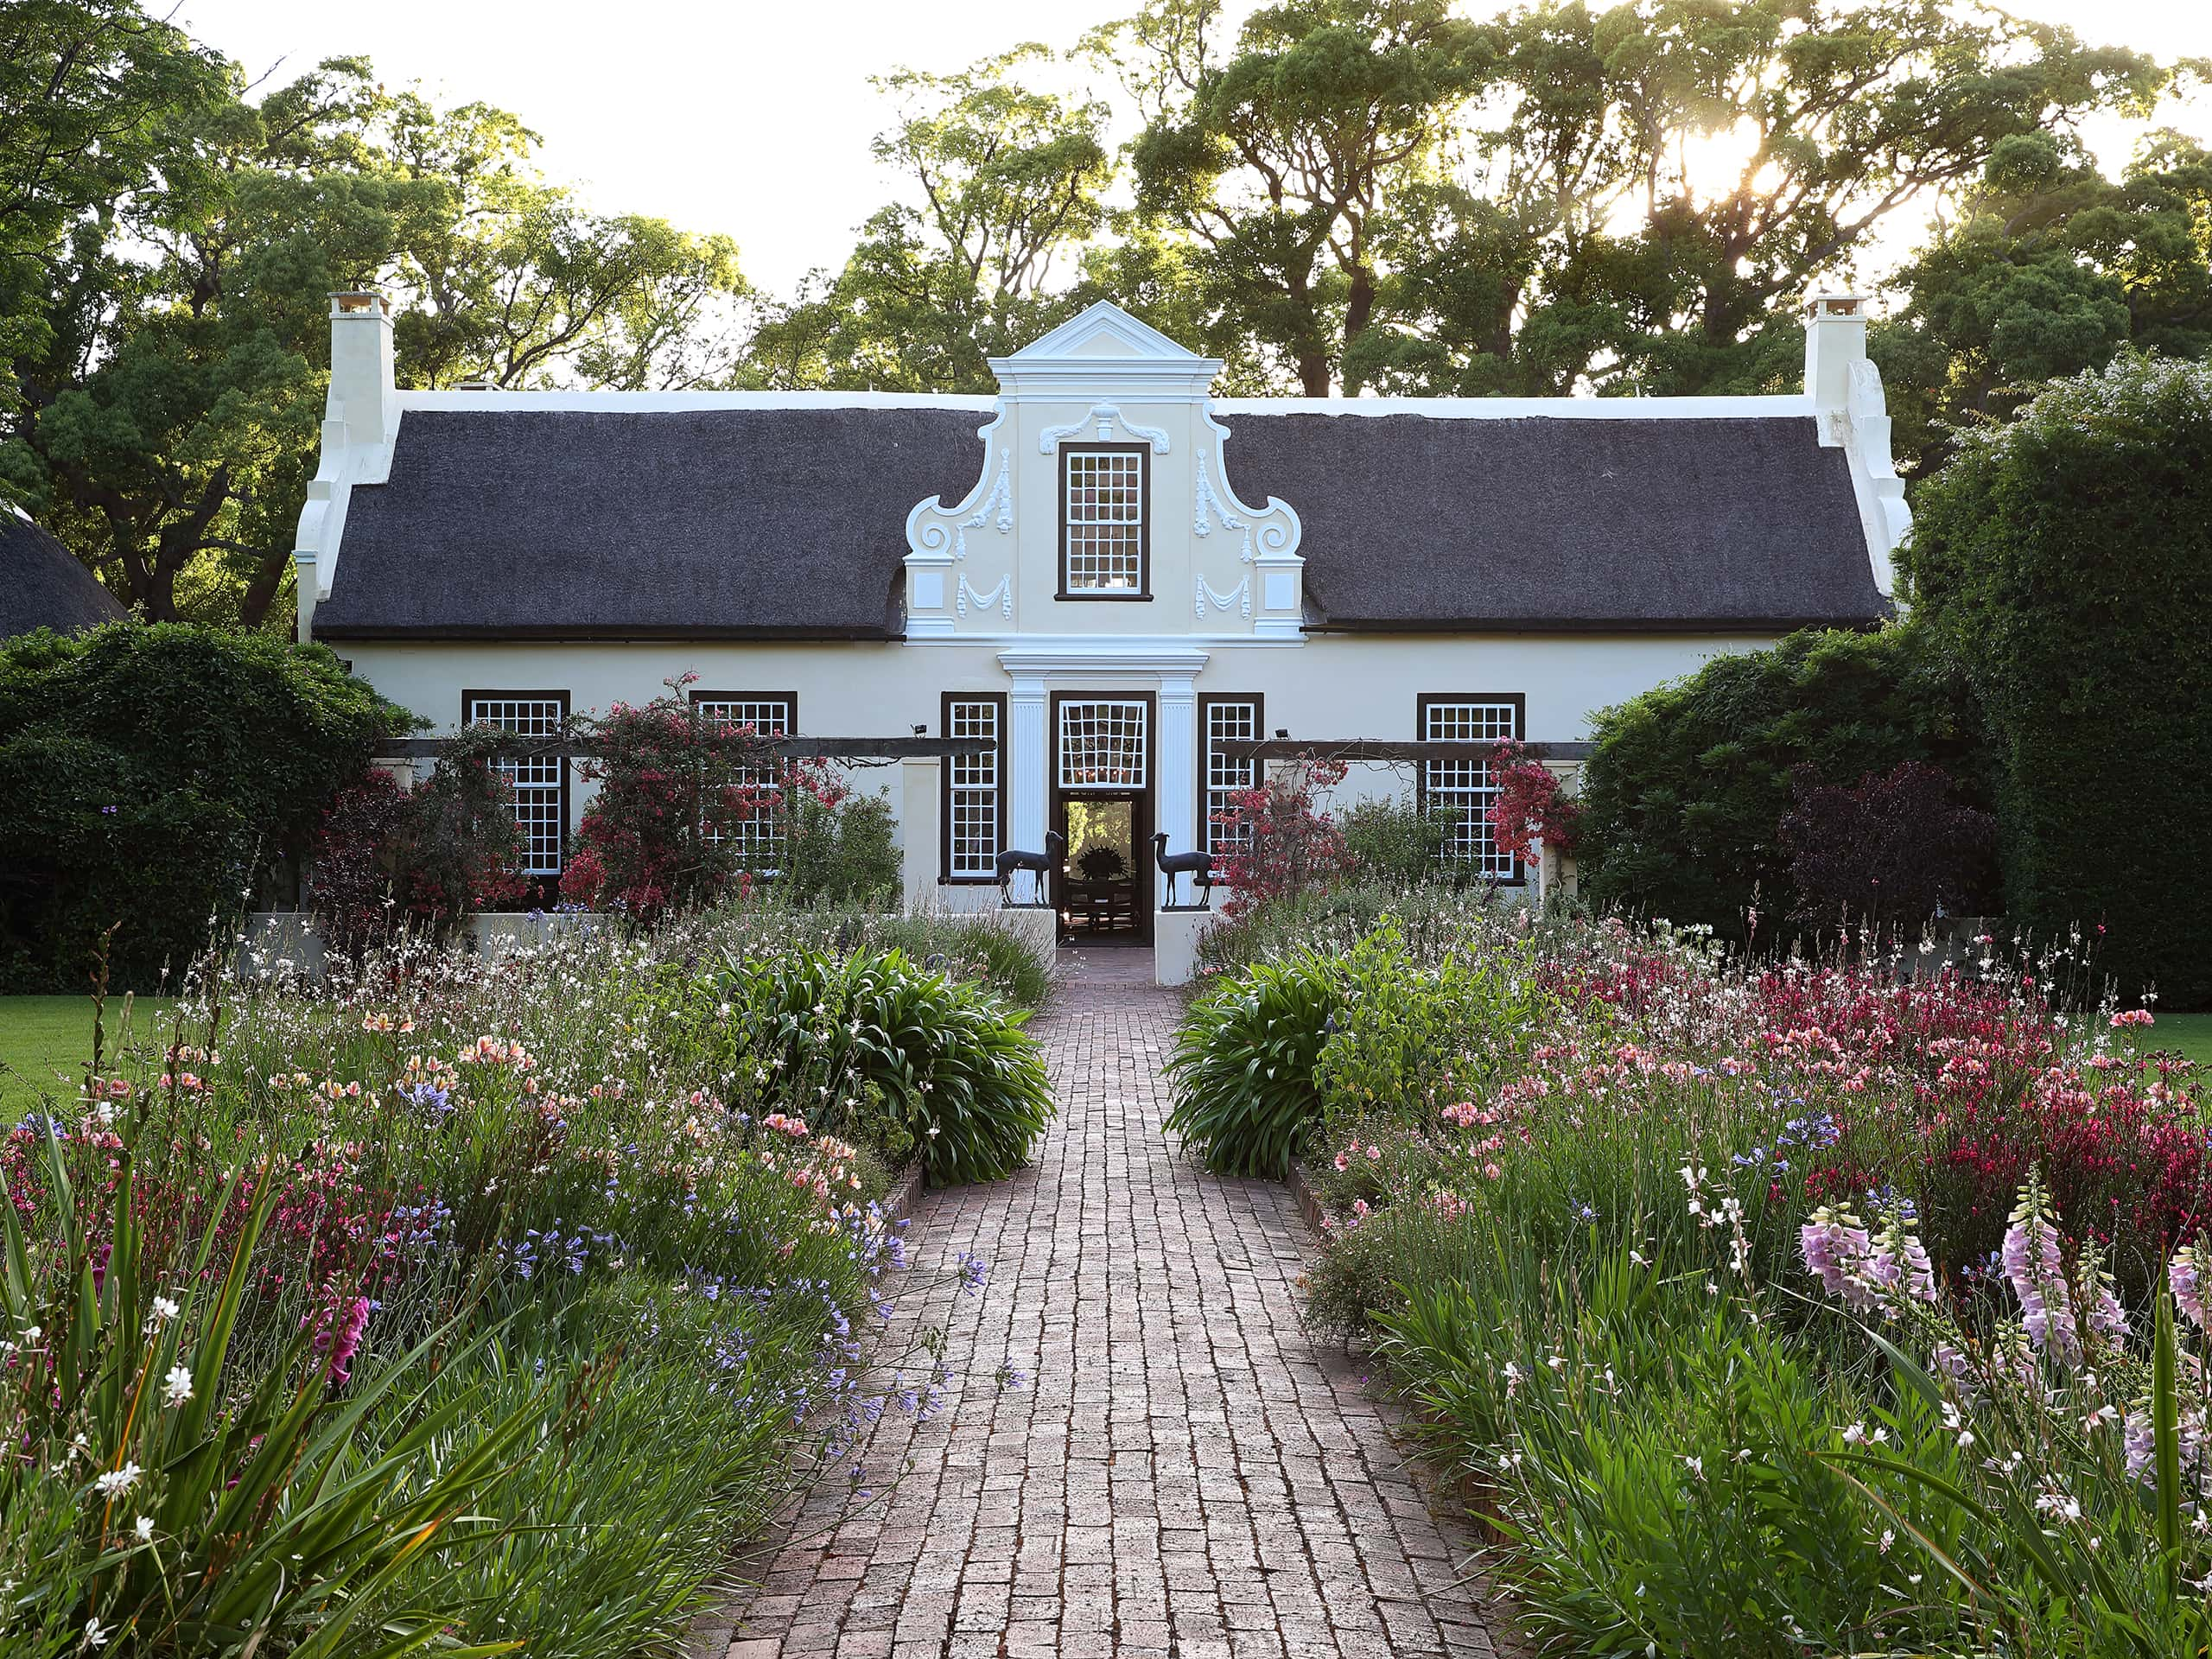 Exquisite Cape Dutch building in the bucolic gardens of Vergelegen, Western Cape. Photo by Elsa Young.